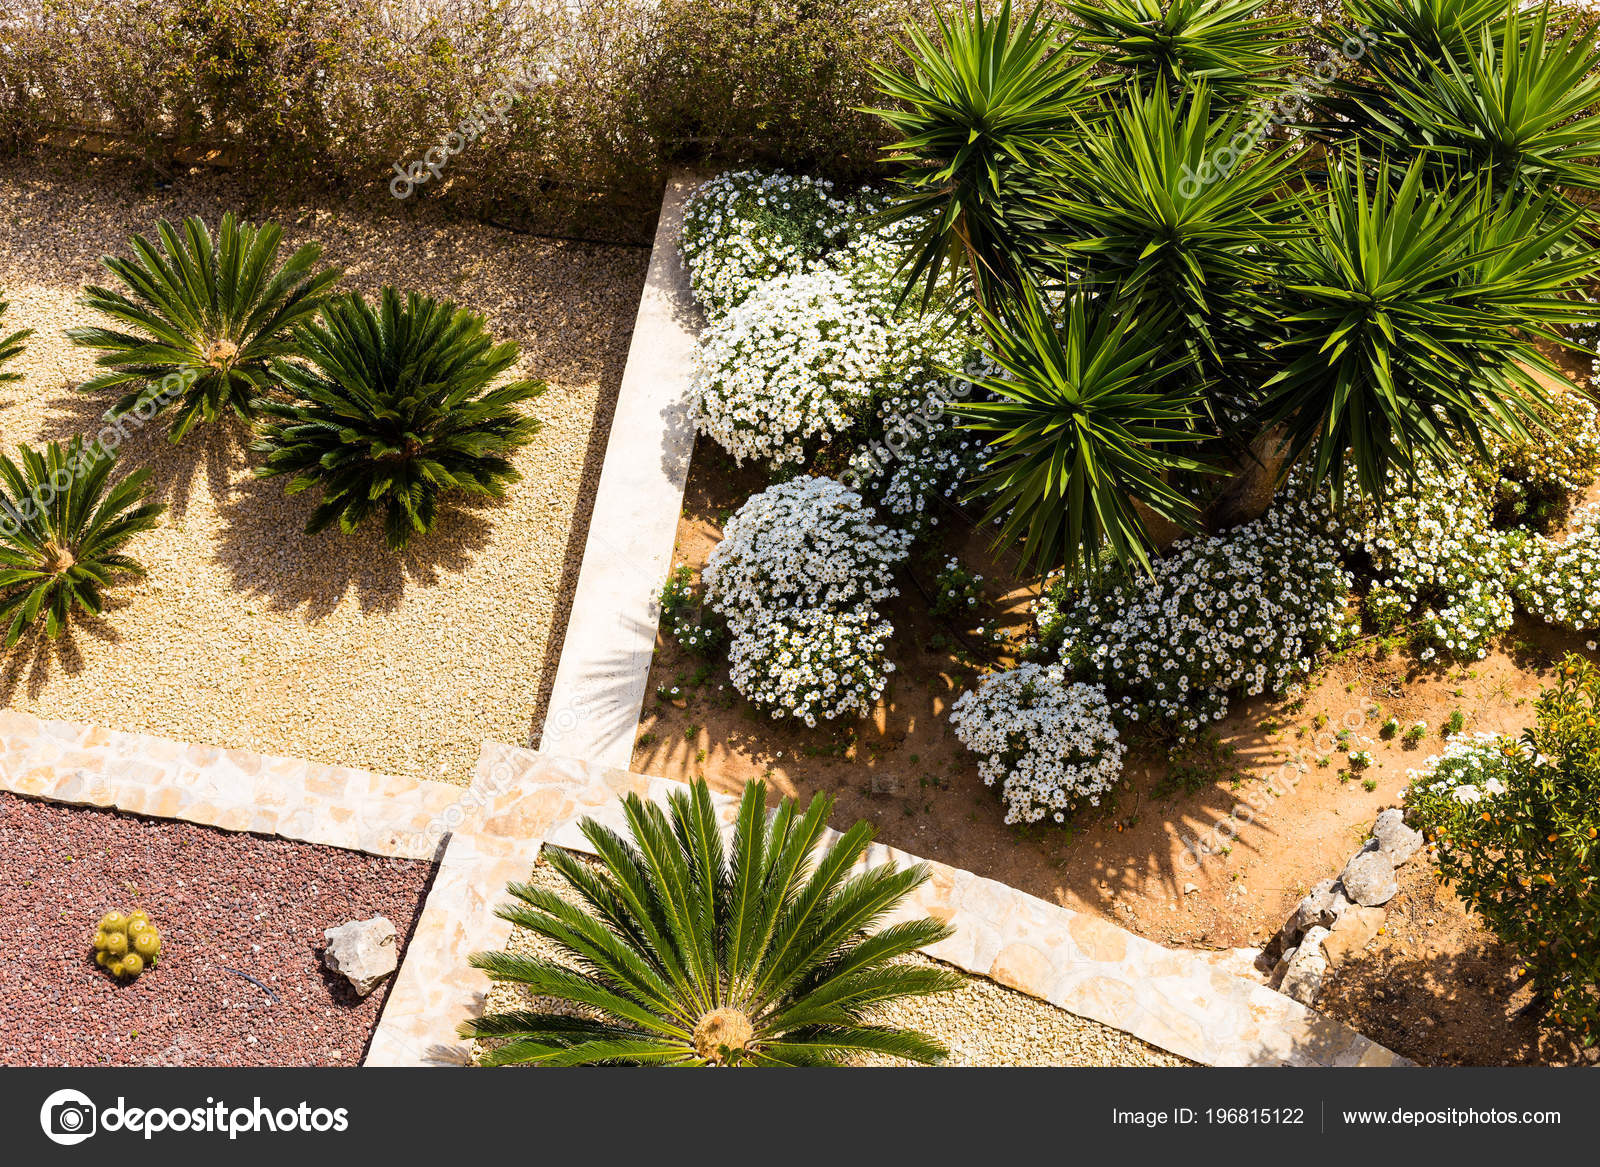 Landscape Design With Palm Trees And Flowers Top View Of The Modern Garden